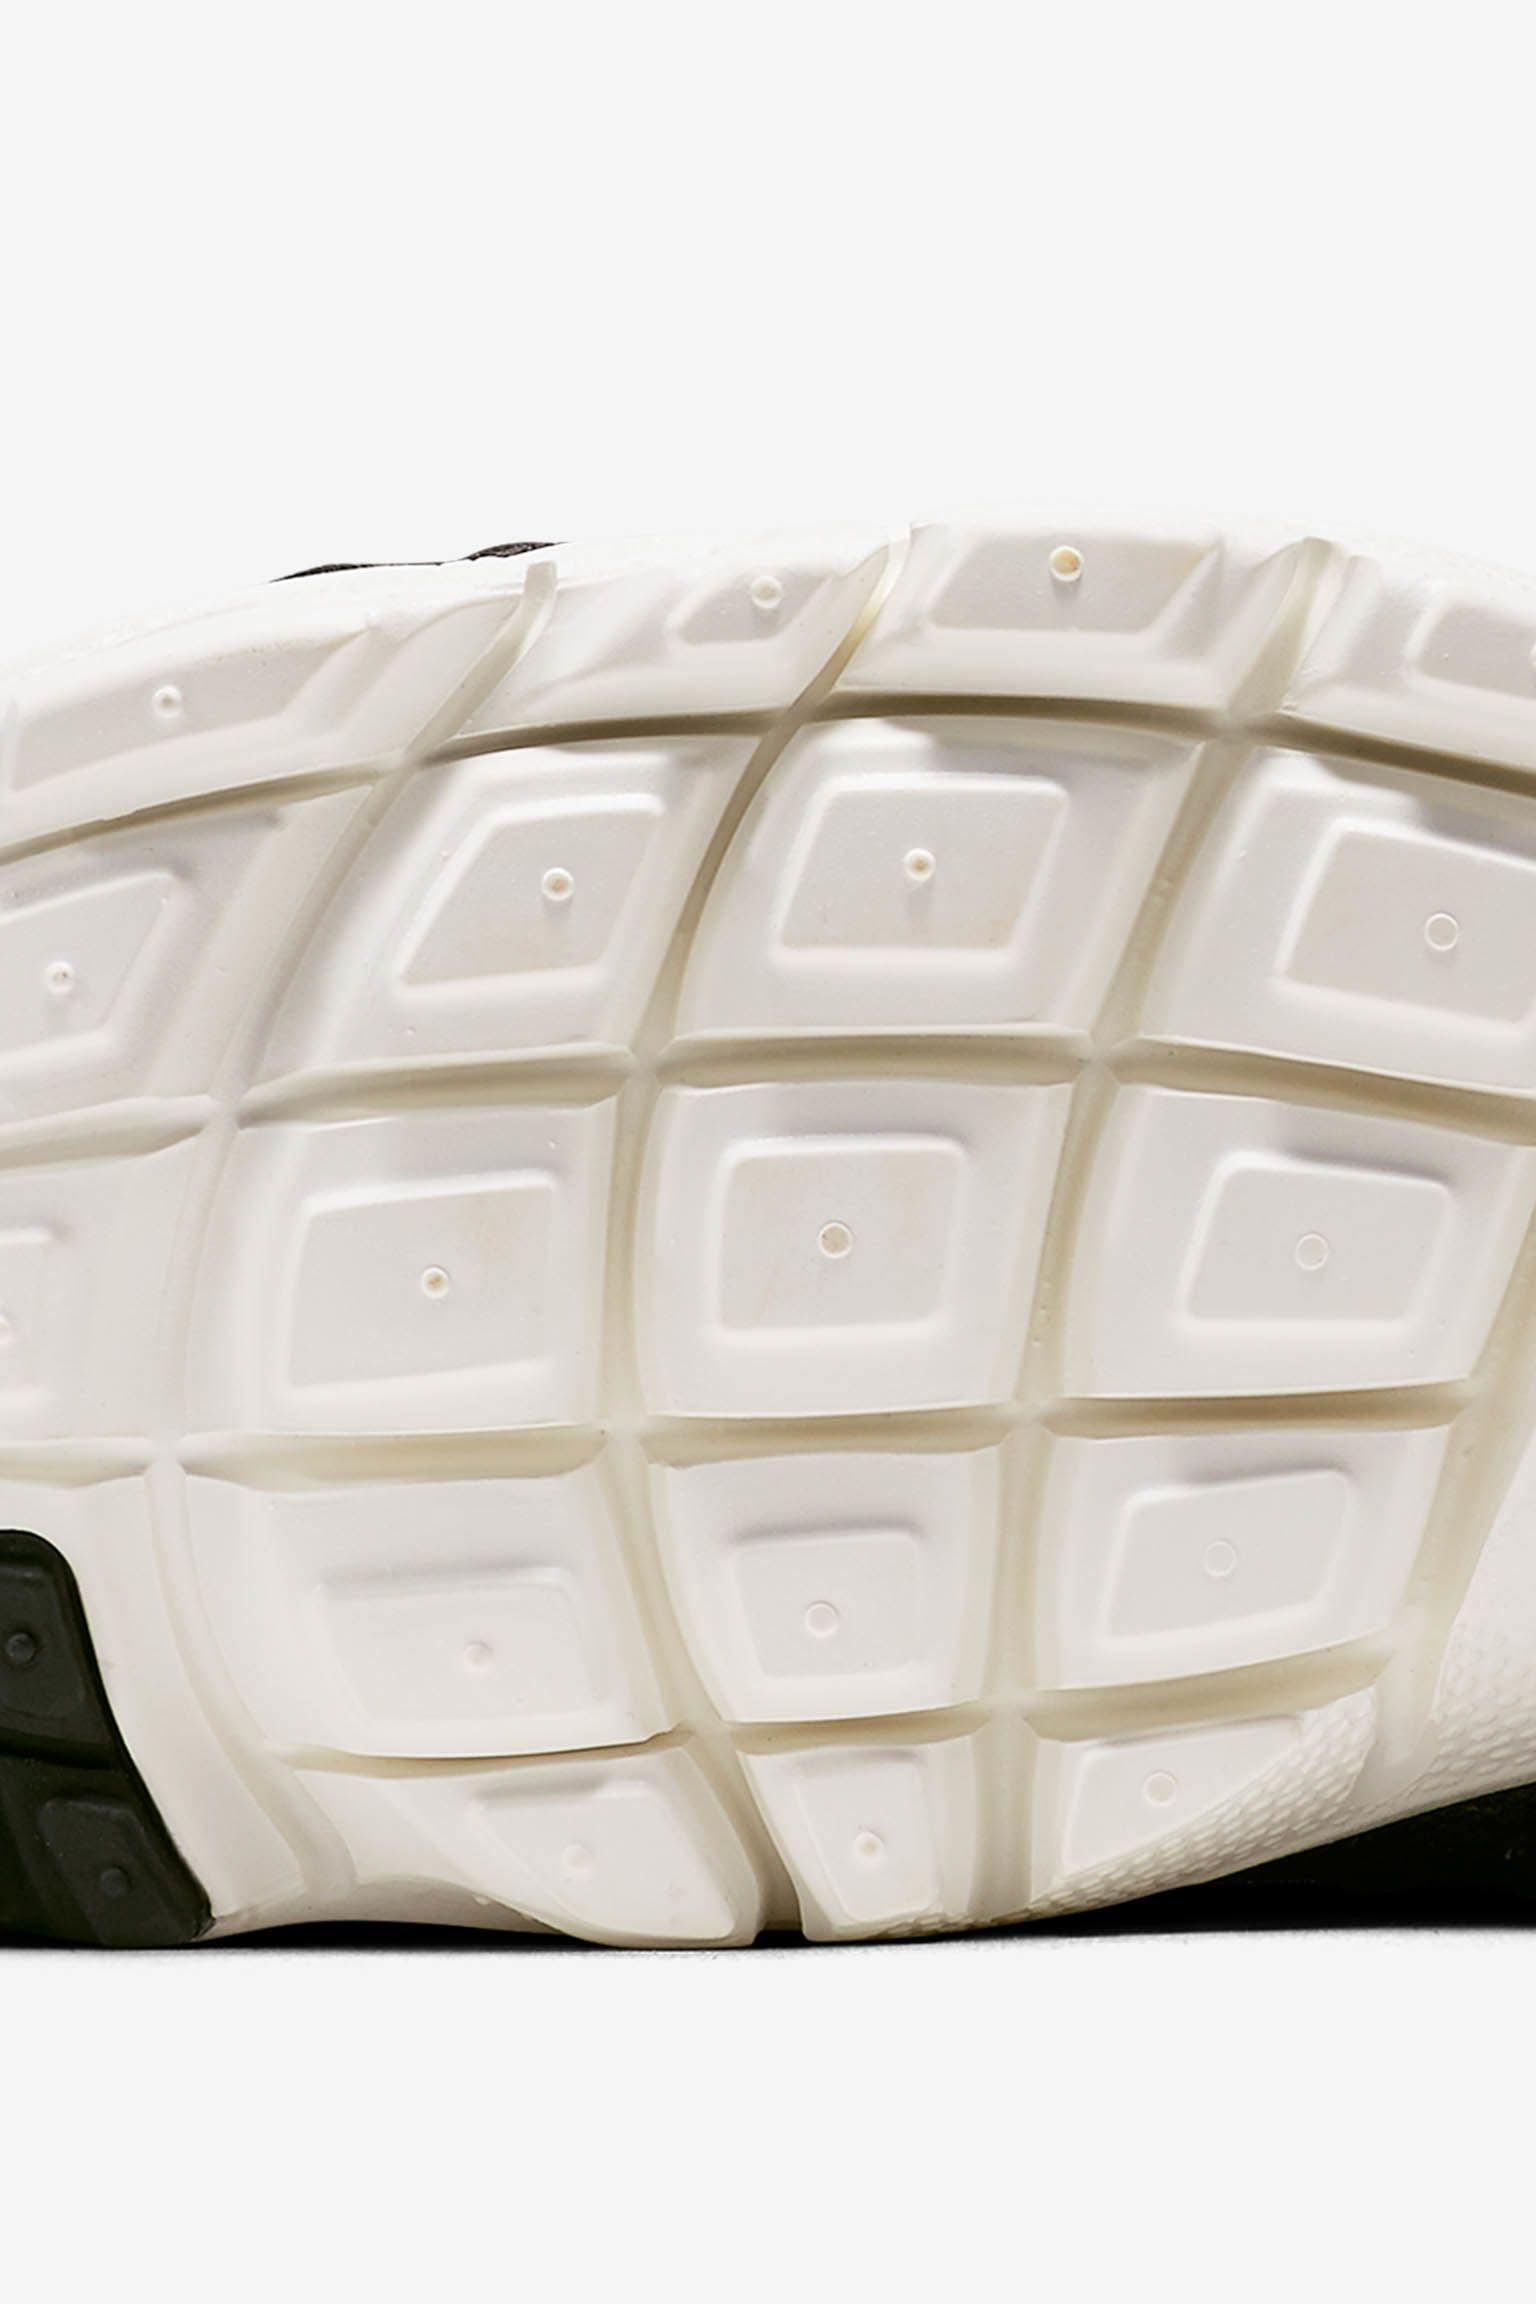 Nike Air Footscape Woven Chukka SE 'Black & Ivory'. Release Date